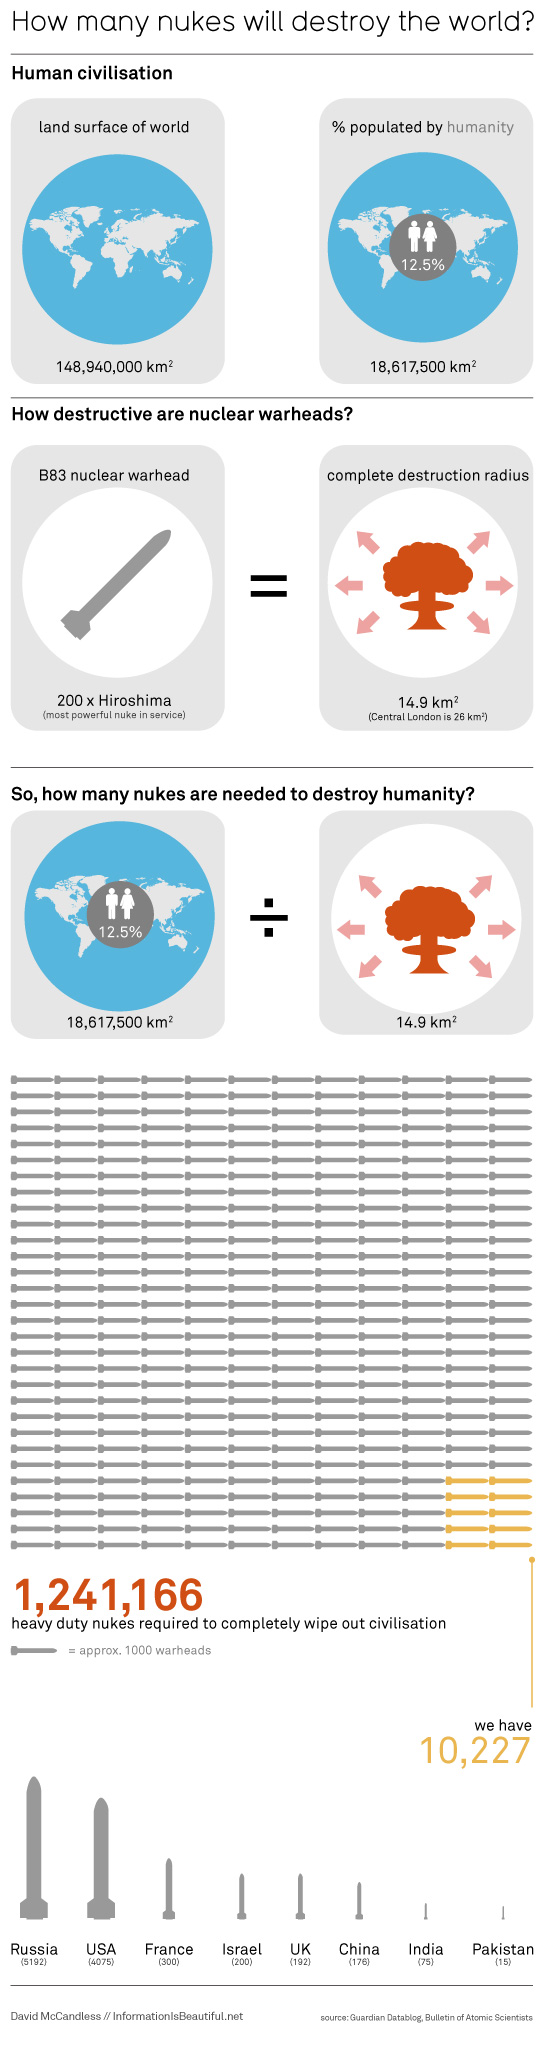 So, how many nukes are needed to destroy humanity?